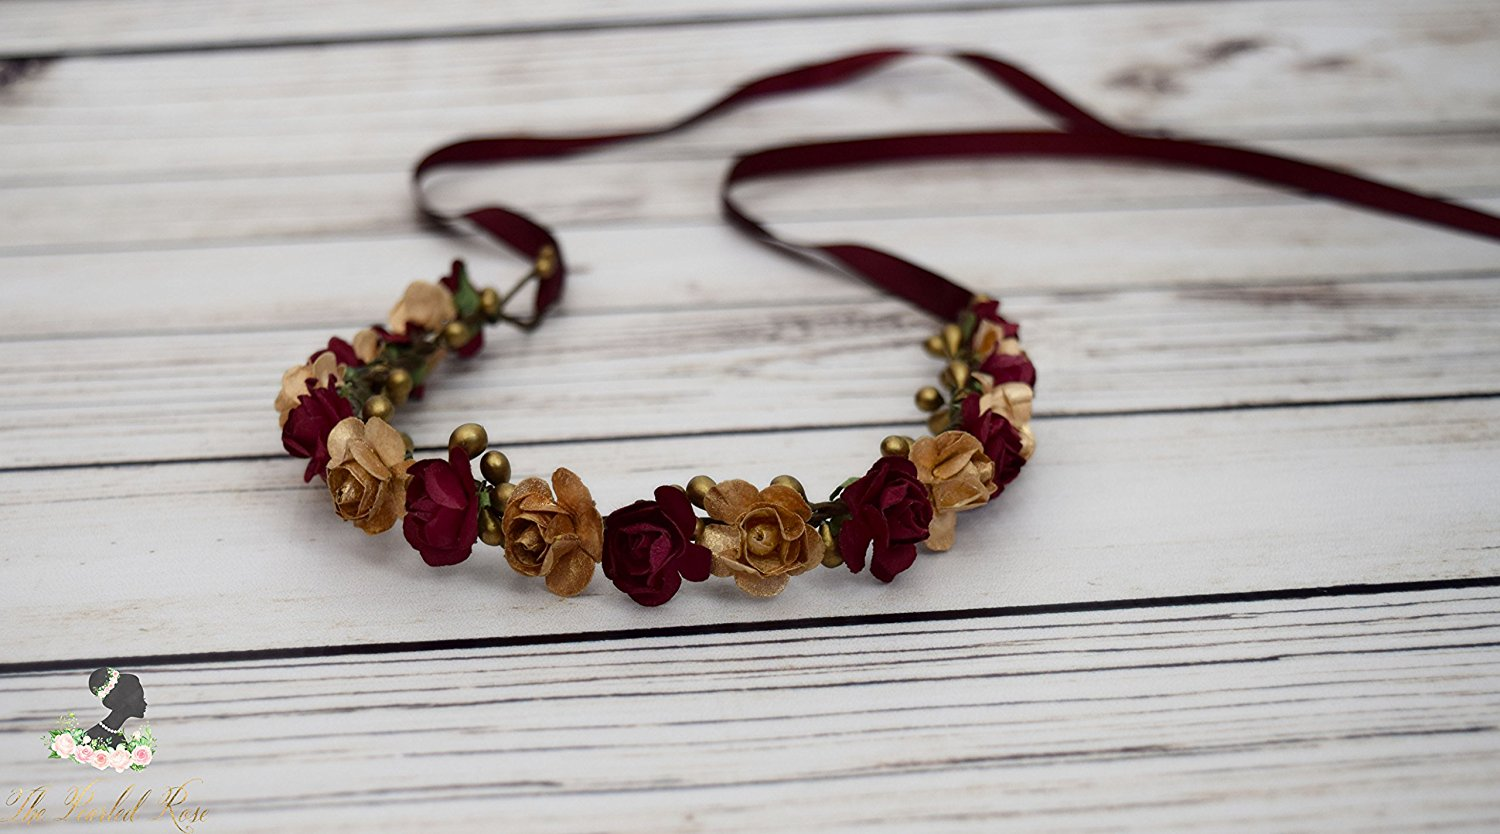 Cheap flower crown diy find flower crown diy deals on line at get quotations handcrafted burgundy and gold flower crown rose flower halo small flower crown wedding izmirmasajfo